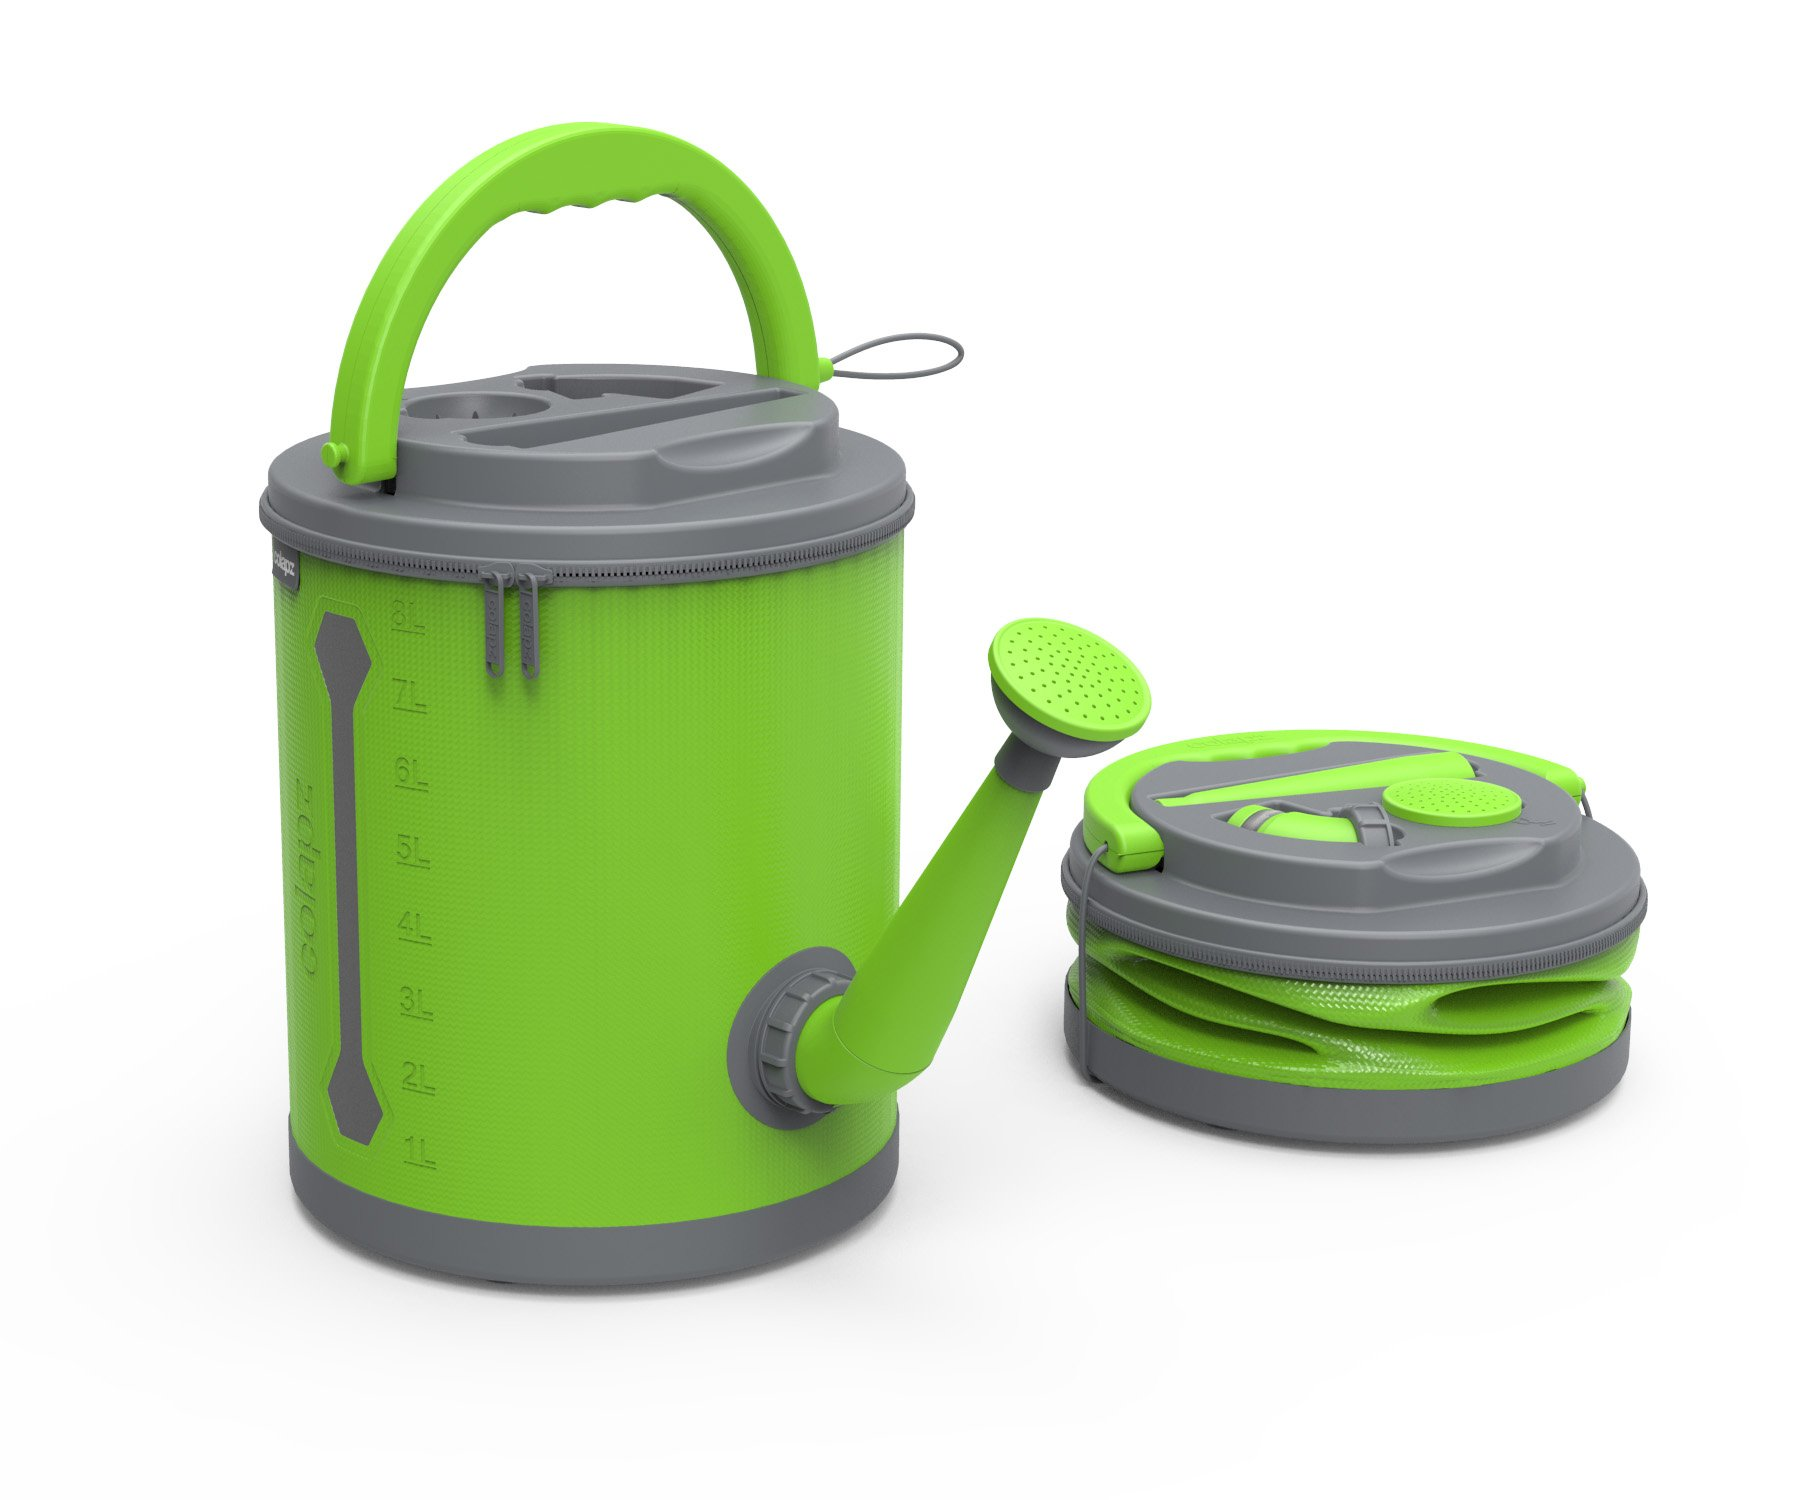 COLOURWAVE Premium Collapsible Watering Can, 2.4-Gallon, Lime Green